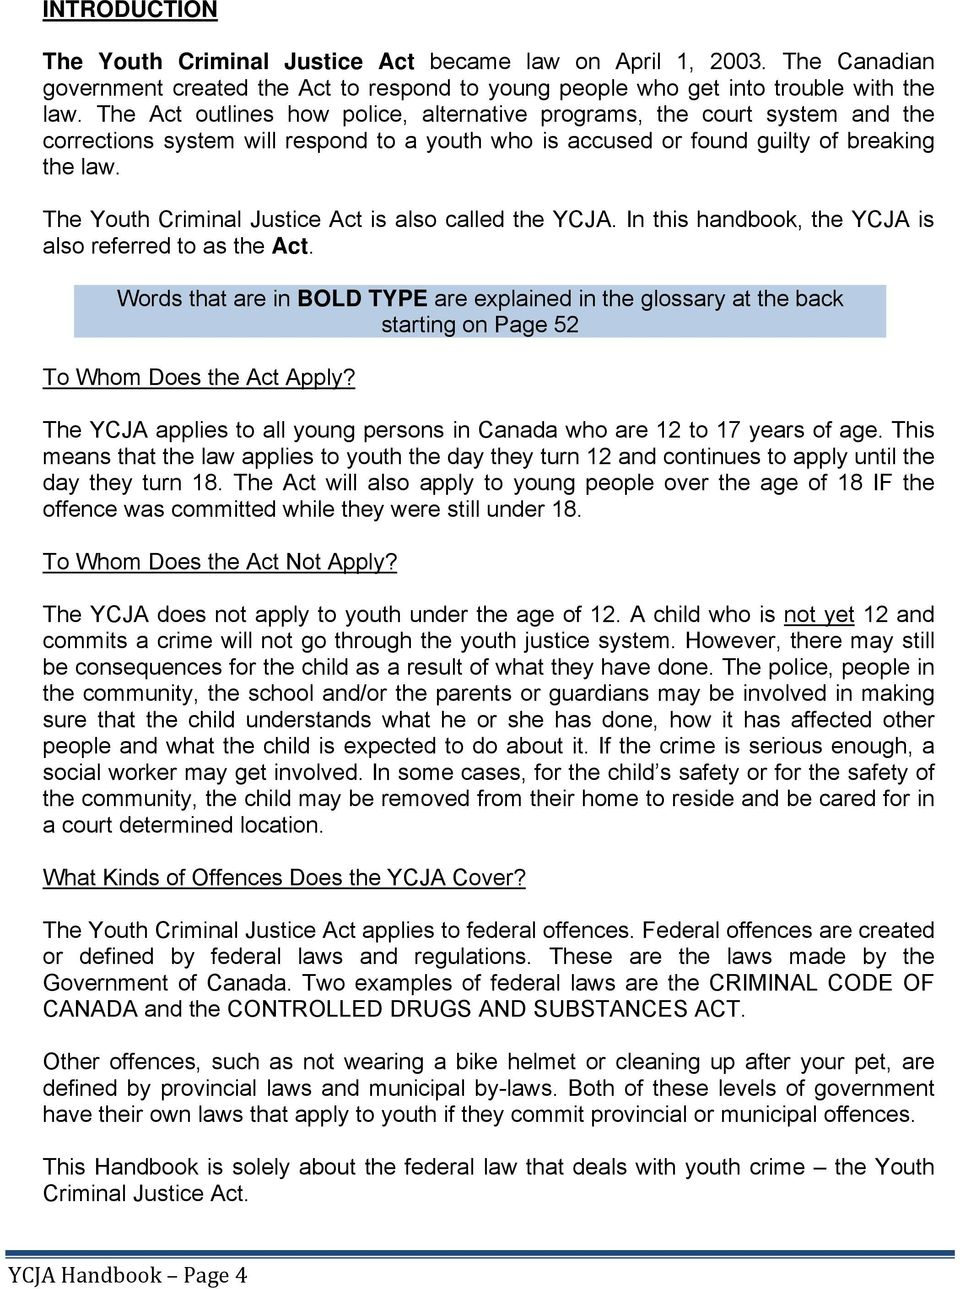 The Youth Criminal Justice Act is also called the YCJA. In this handbook, the YCJA is also referred to as the Act.